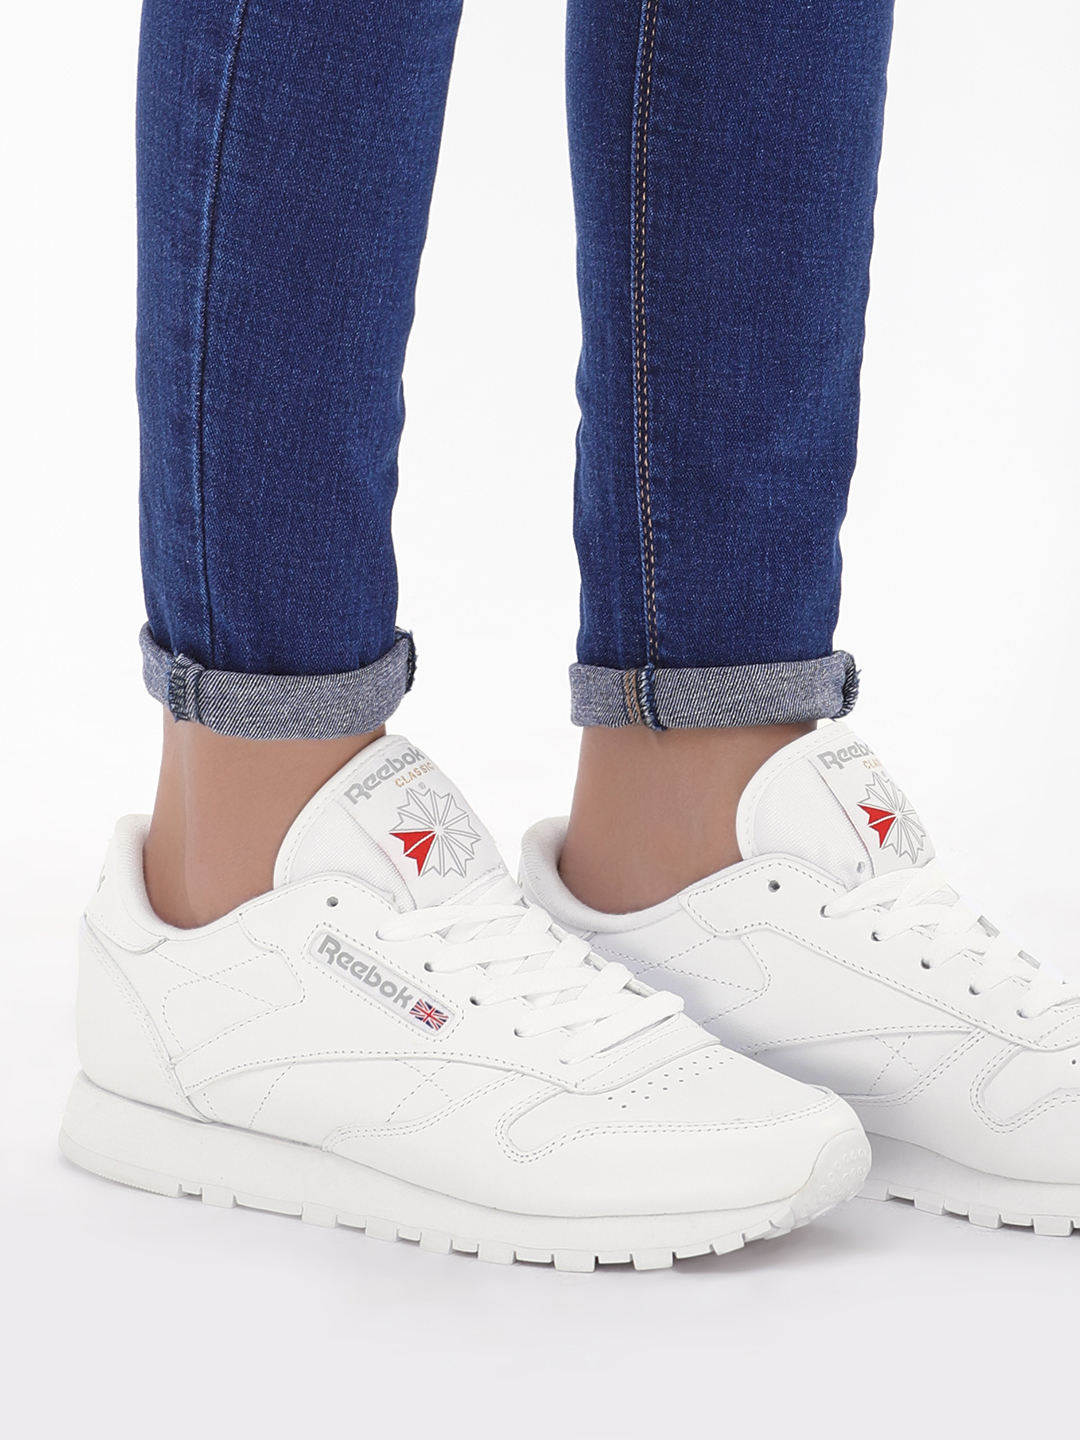 Reebok Classics White Leather Trainers 1